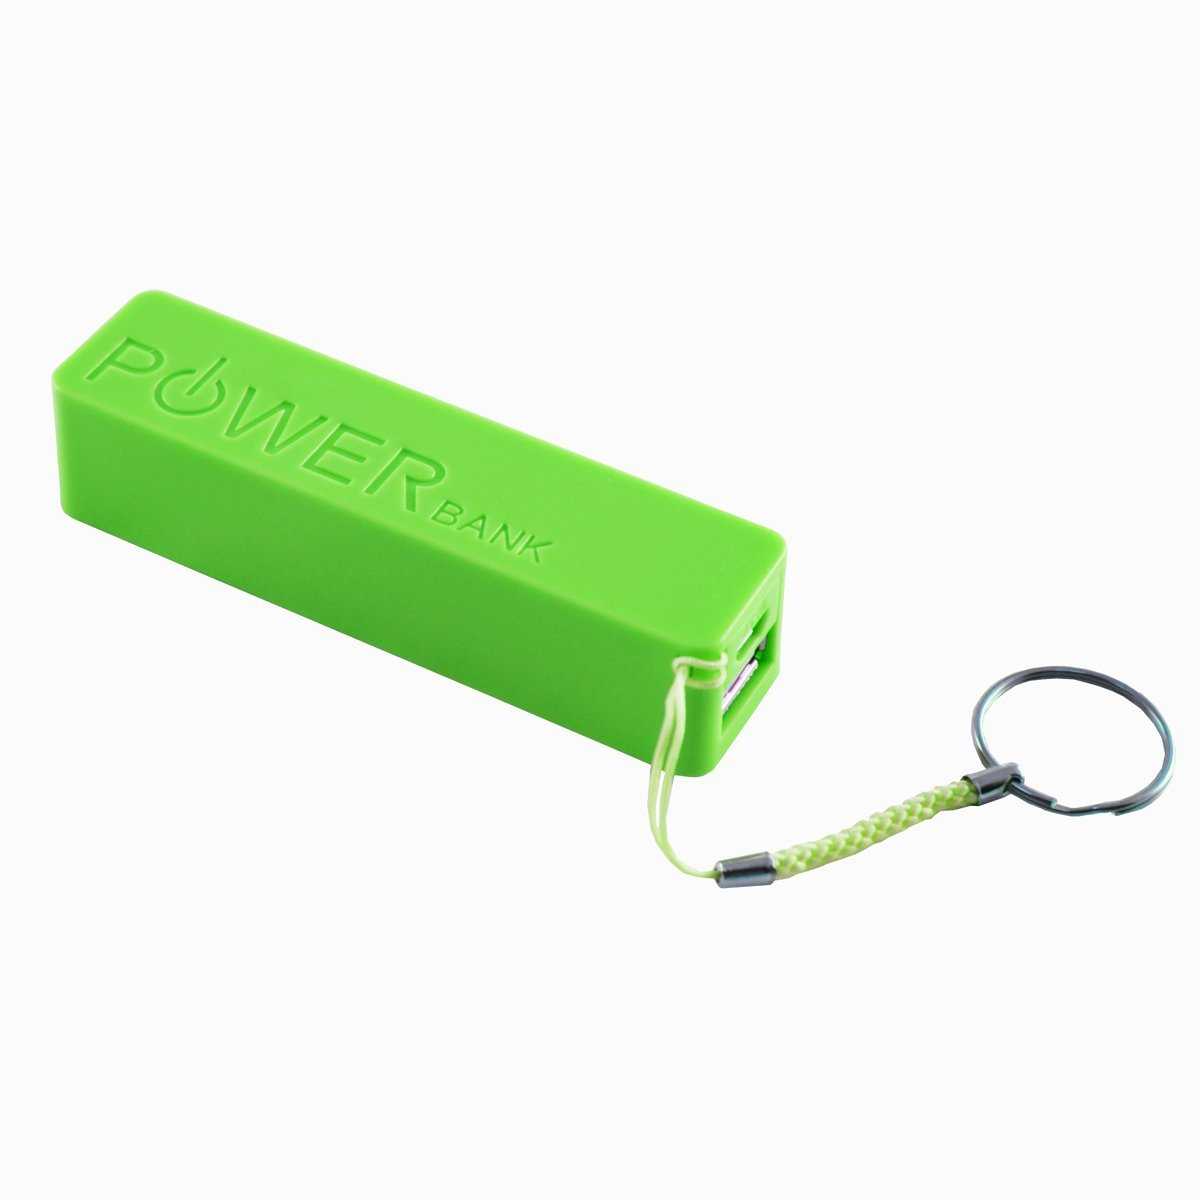 Power Bank A5 Portable Charger For Sale In Jamaica